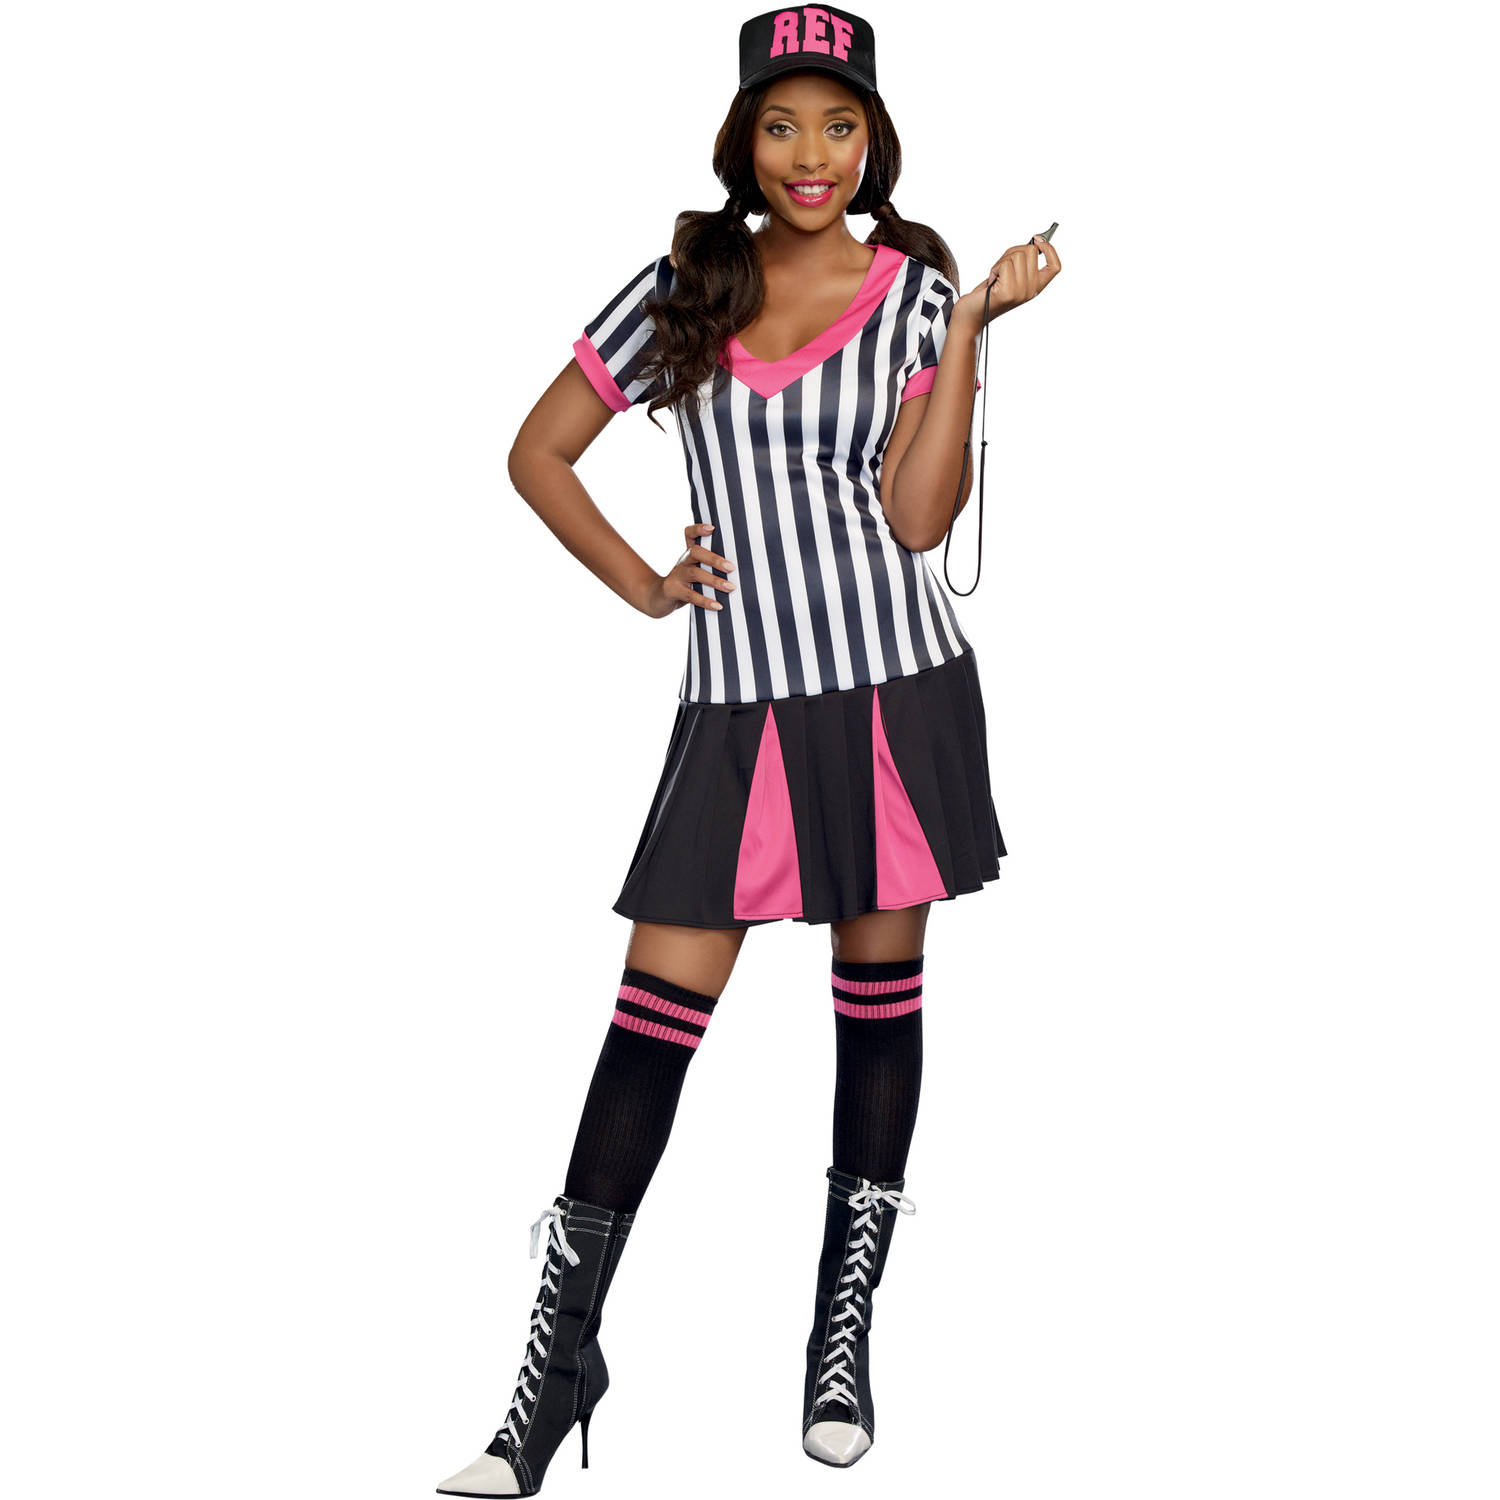 Half-Time Hottie Women's Halloween Dress Up / Role Play Costume